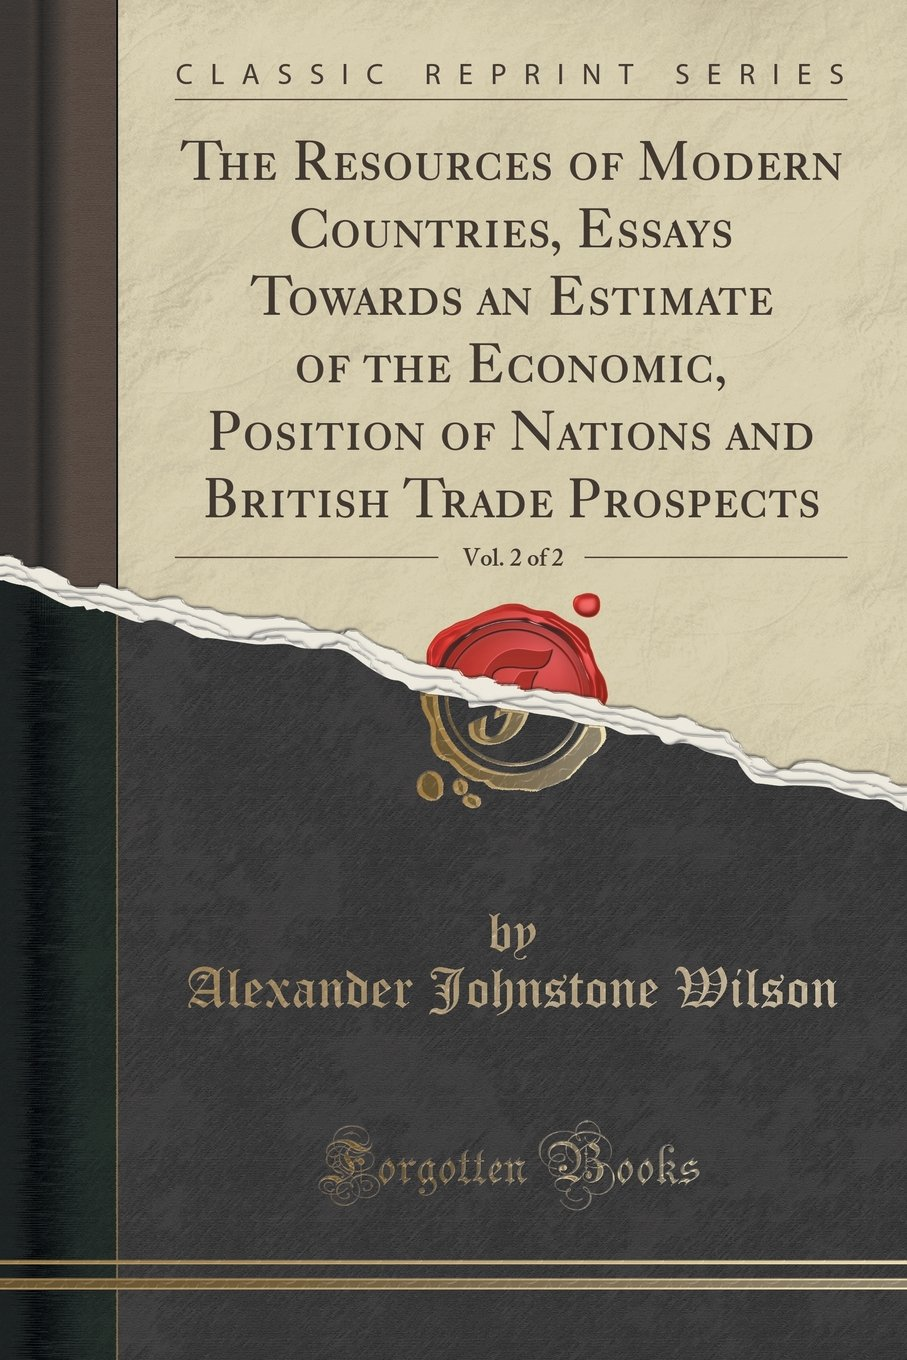 The Resources of Modern Countries, Essays Towards an Estimate of the Economic, Position of Nations and British Trade Prospects, Vol. 2 of 2 (Classic Reprint) PDF